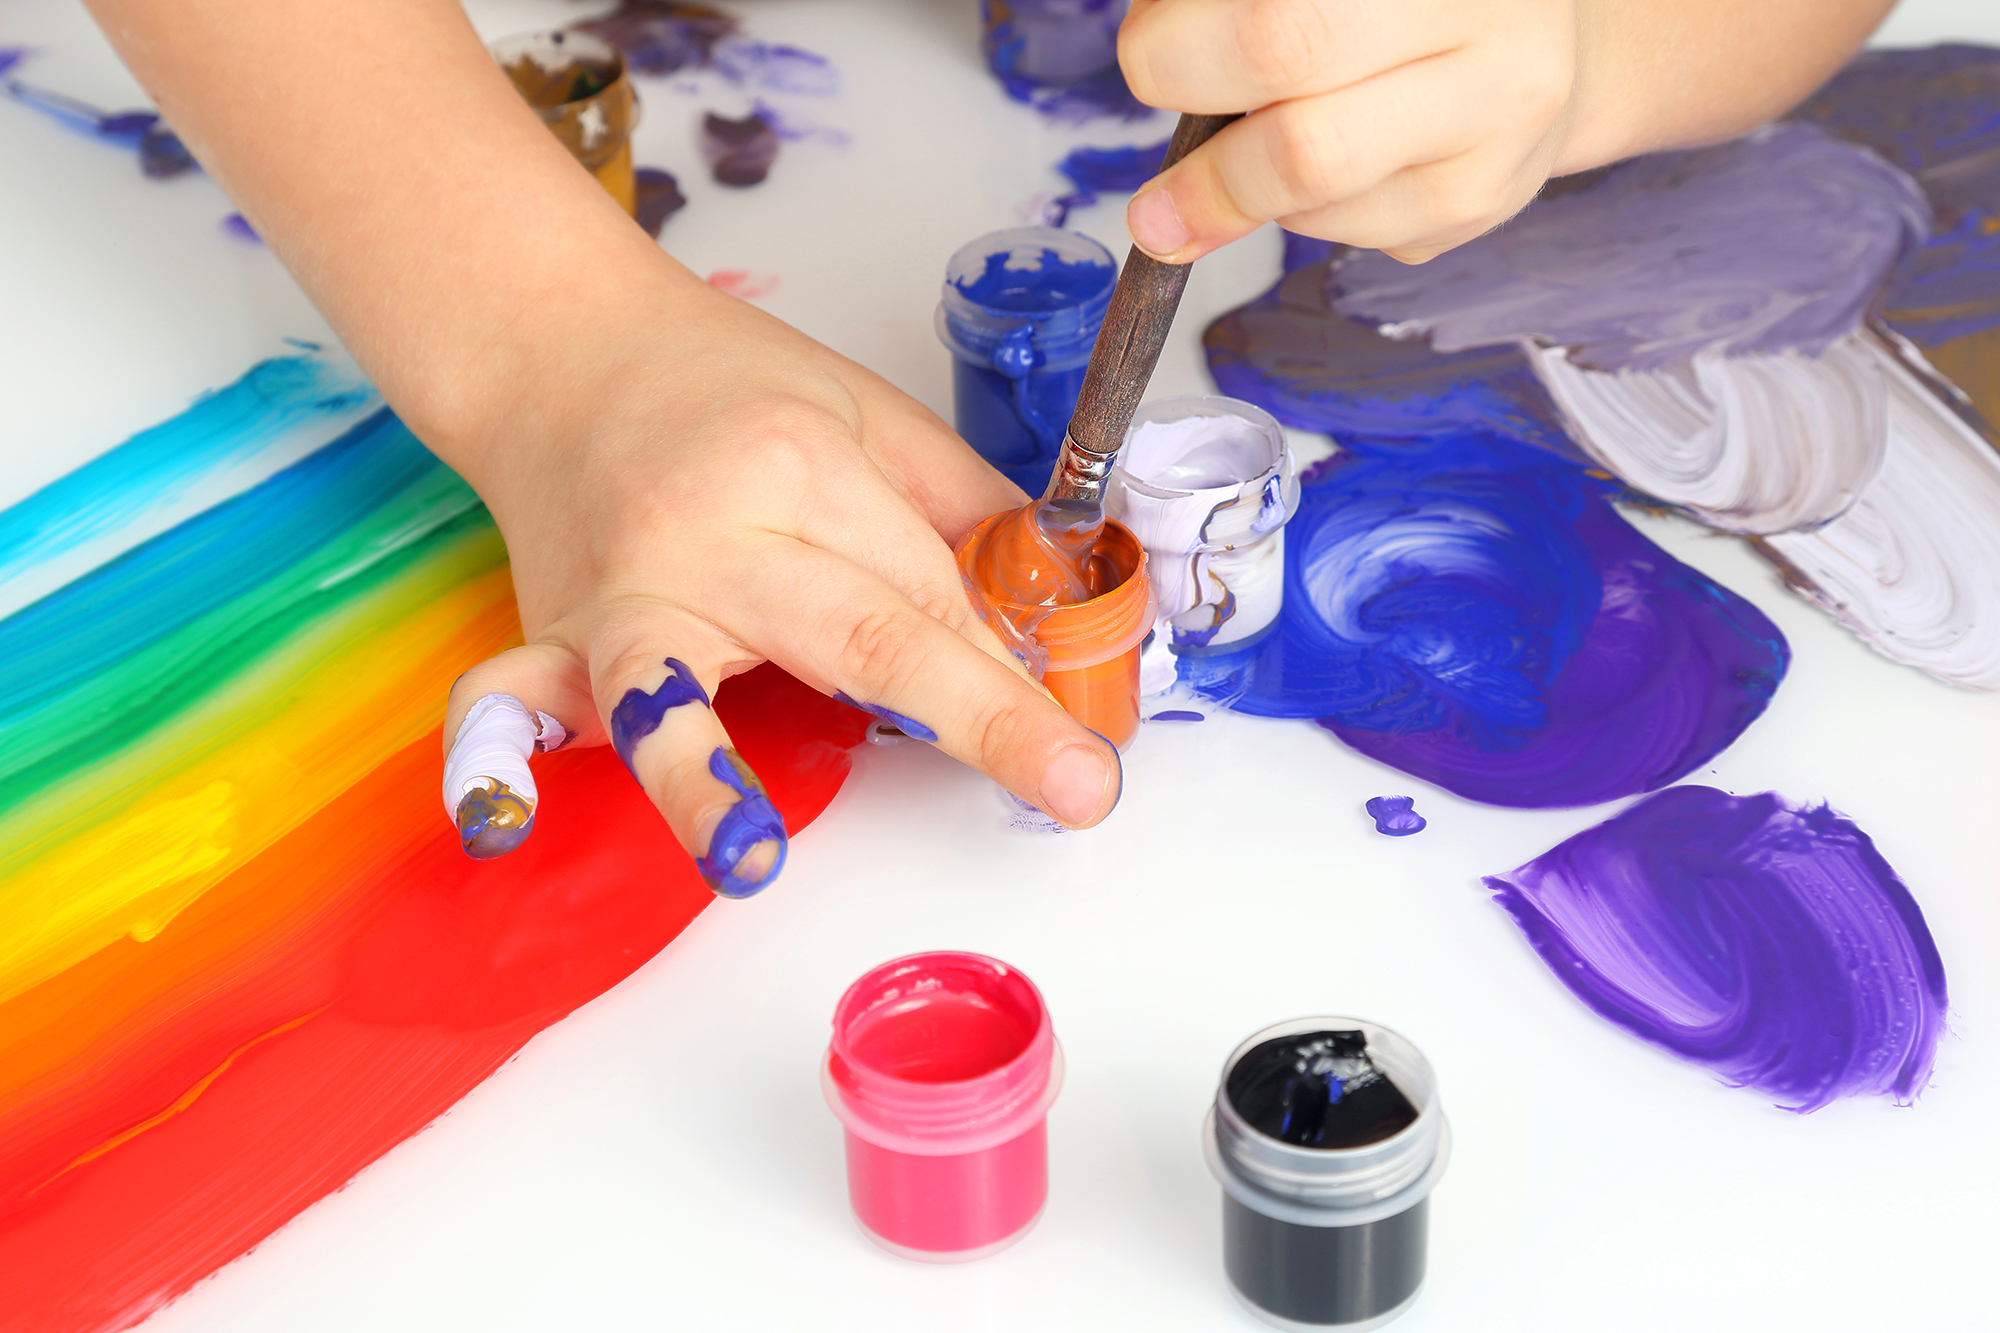 The stages of art development evolves as a child is given creative freedom to explore and experiment with various forms of tools and colors.